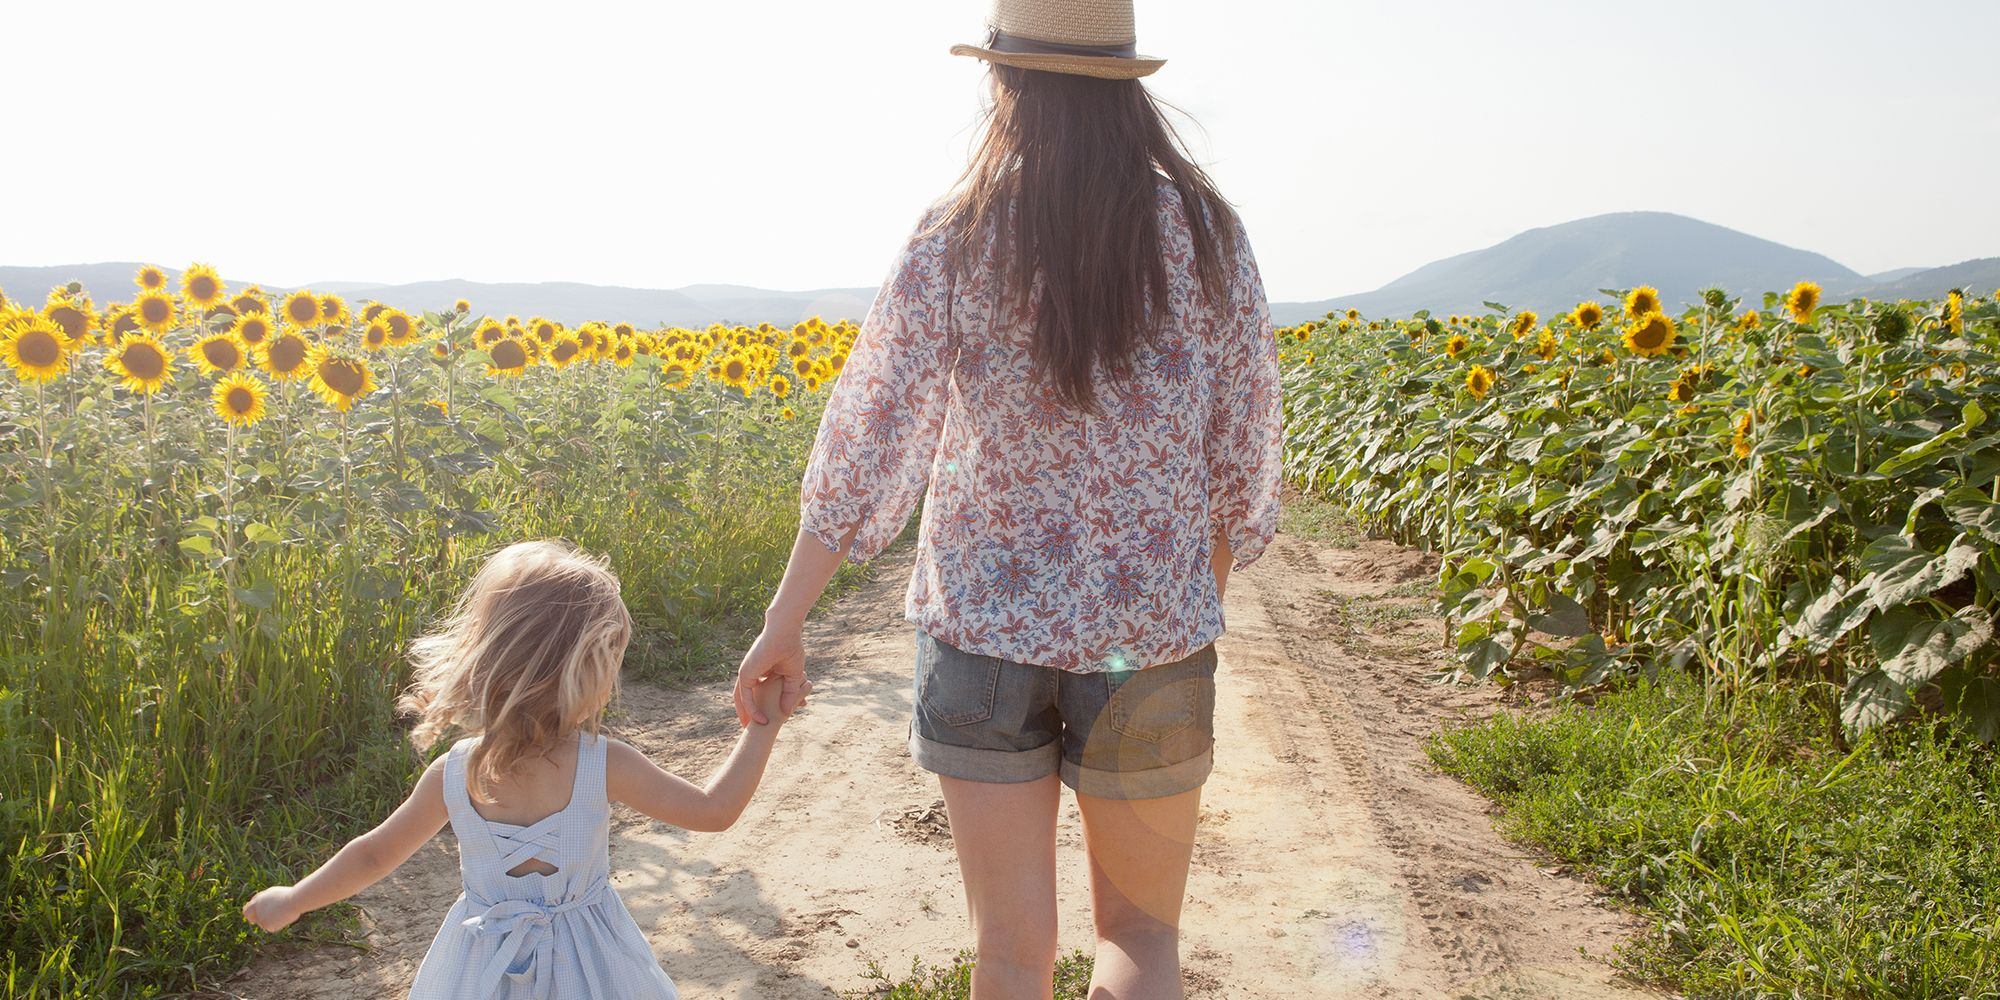 things i wish i knew before i became a nanny